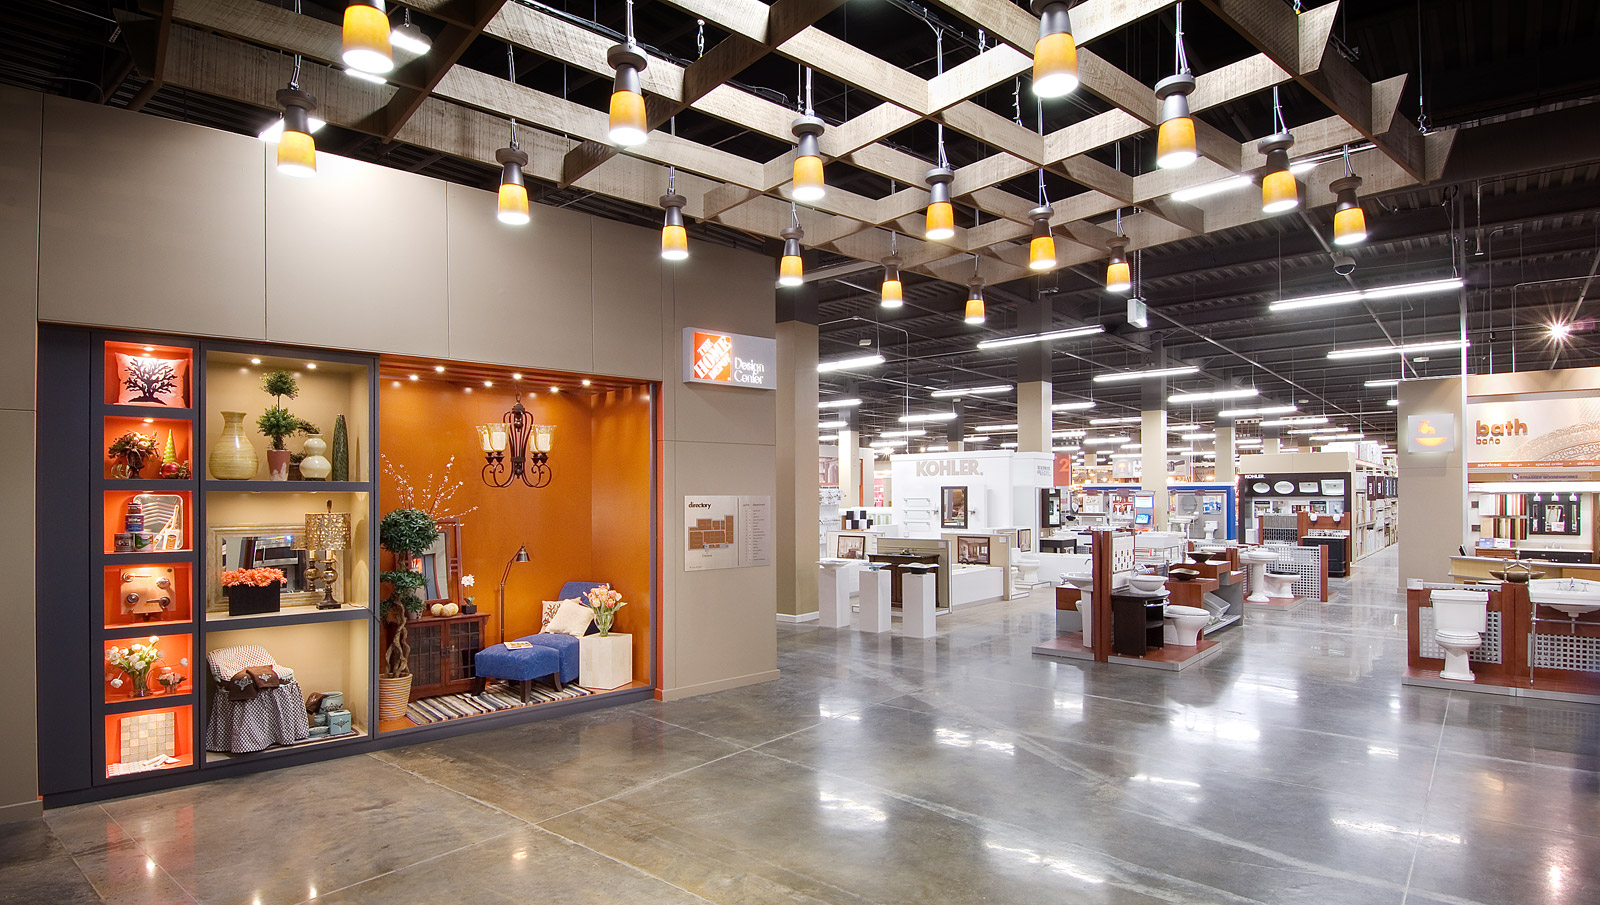 Retail displays fixtures environments for Depot ringcenter